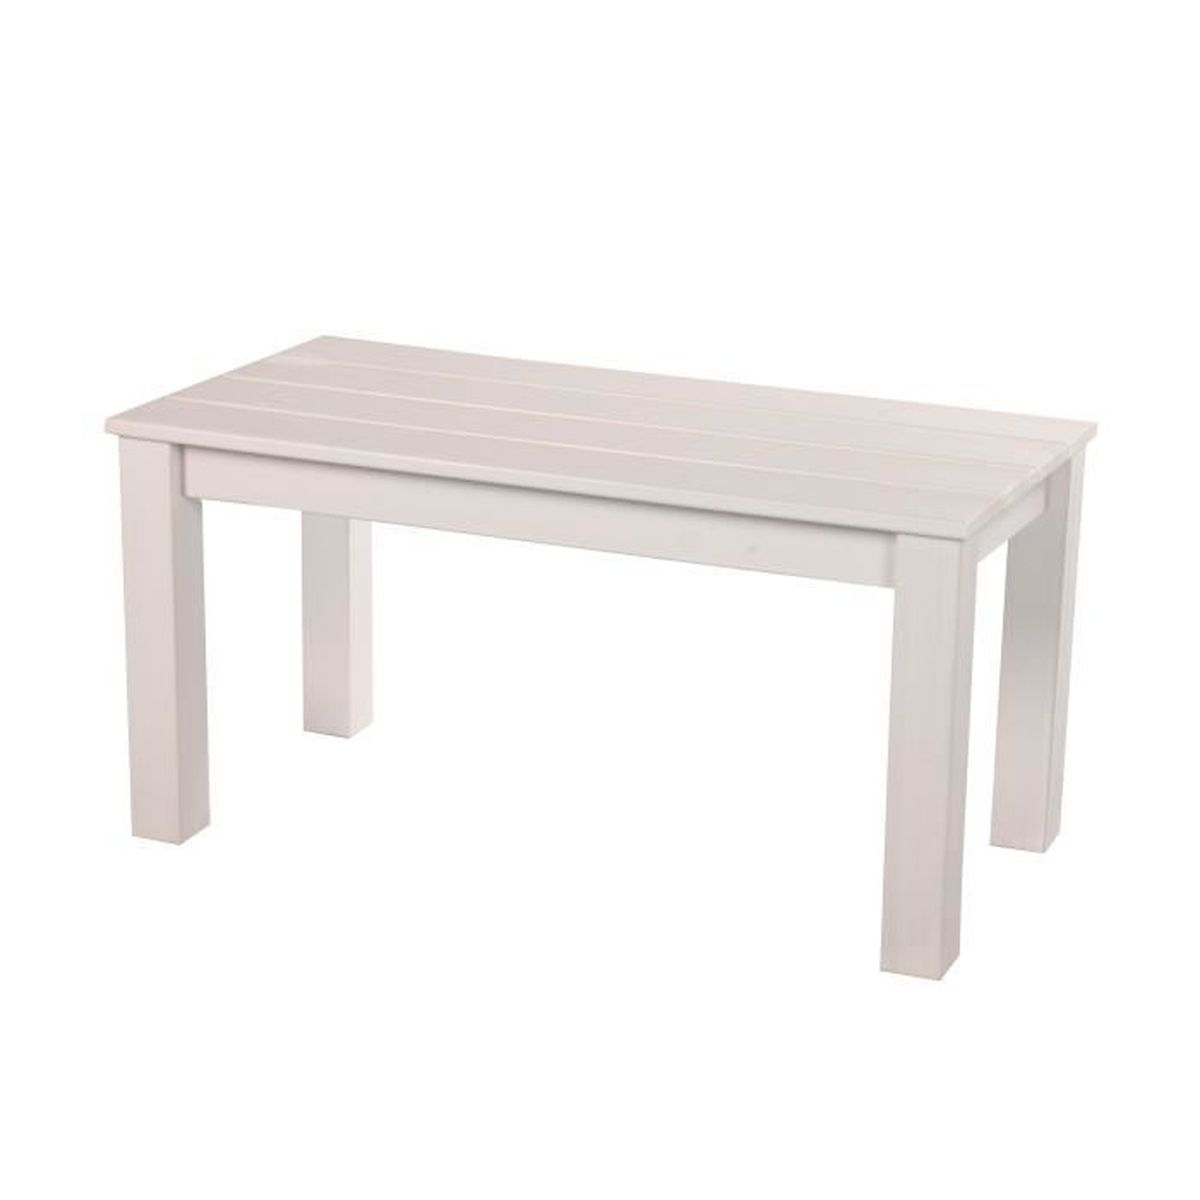 Ehrf rchtige table basse pin massif id es de conception for Table basse en pin